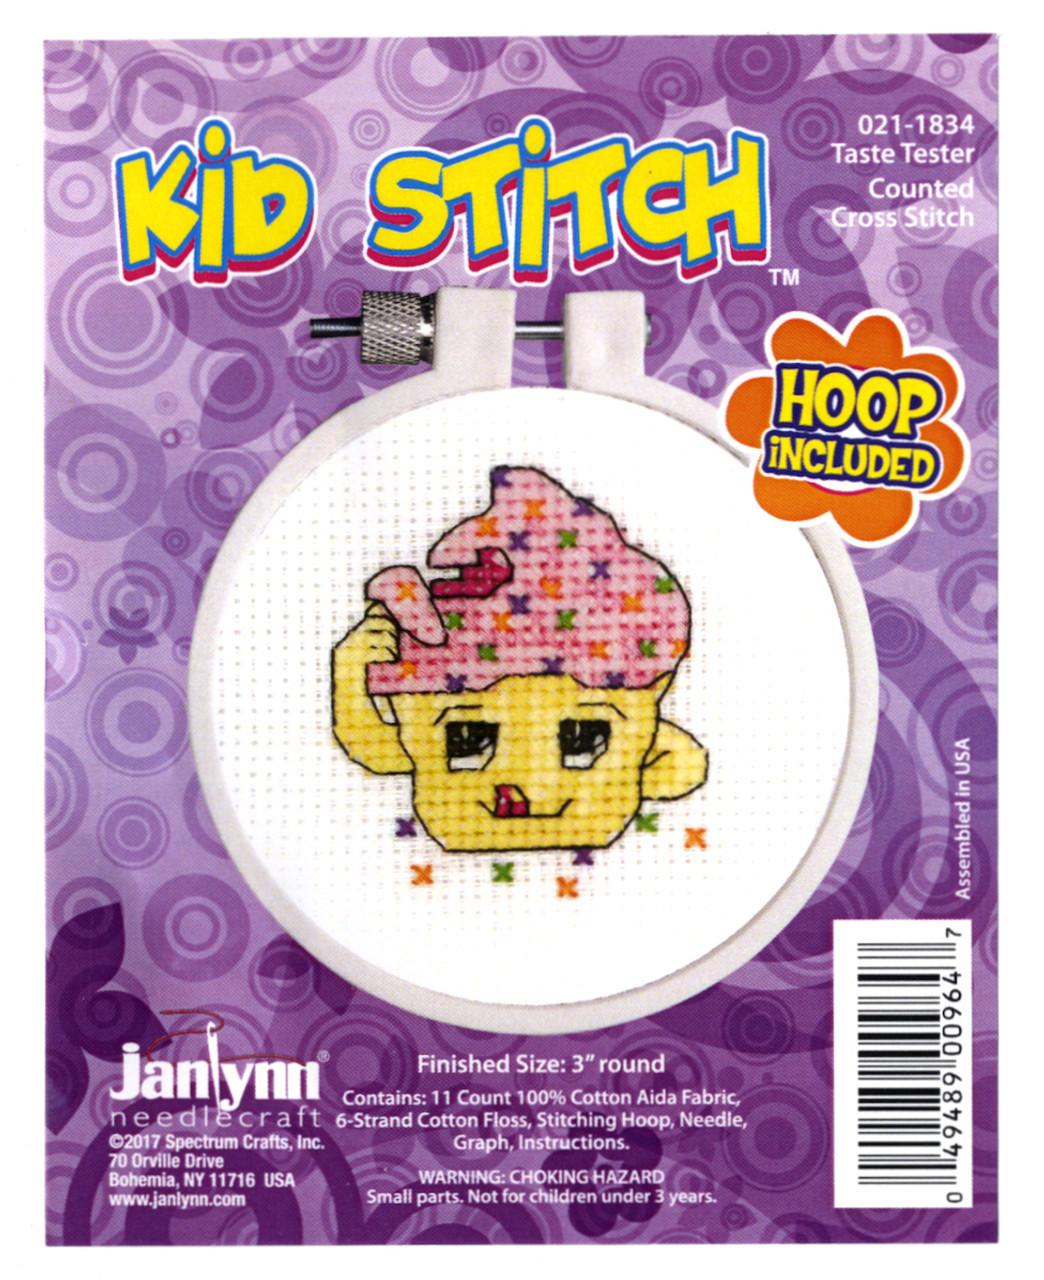 Kid Stitch - Tasty Tester